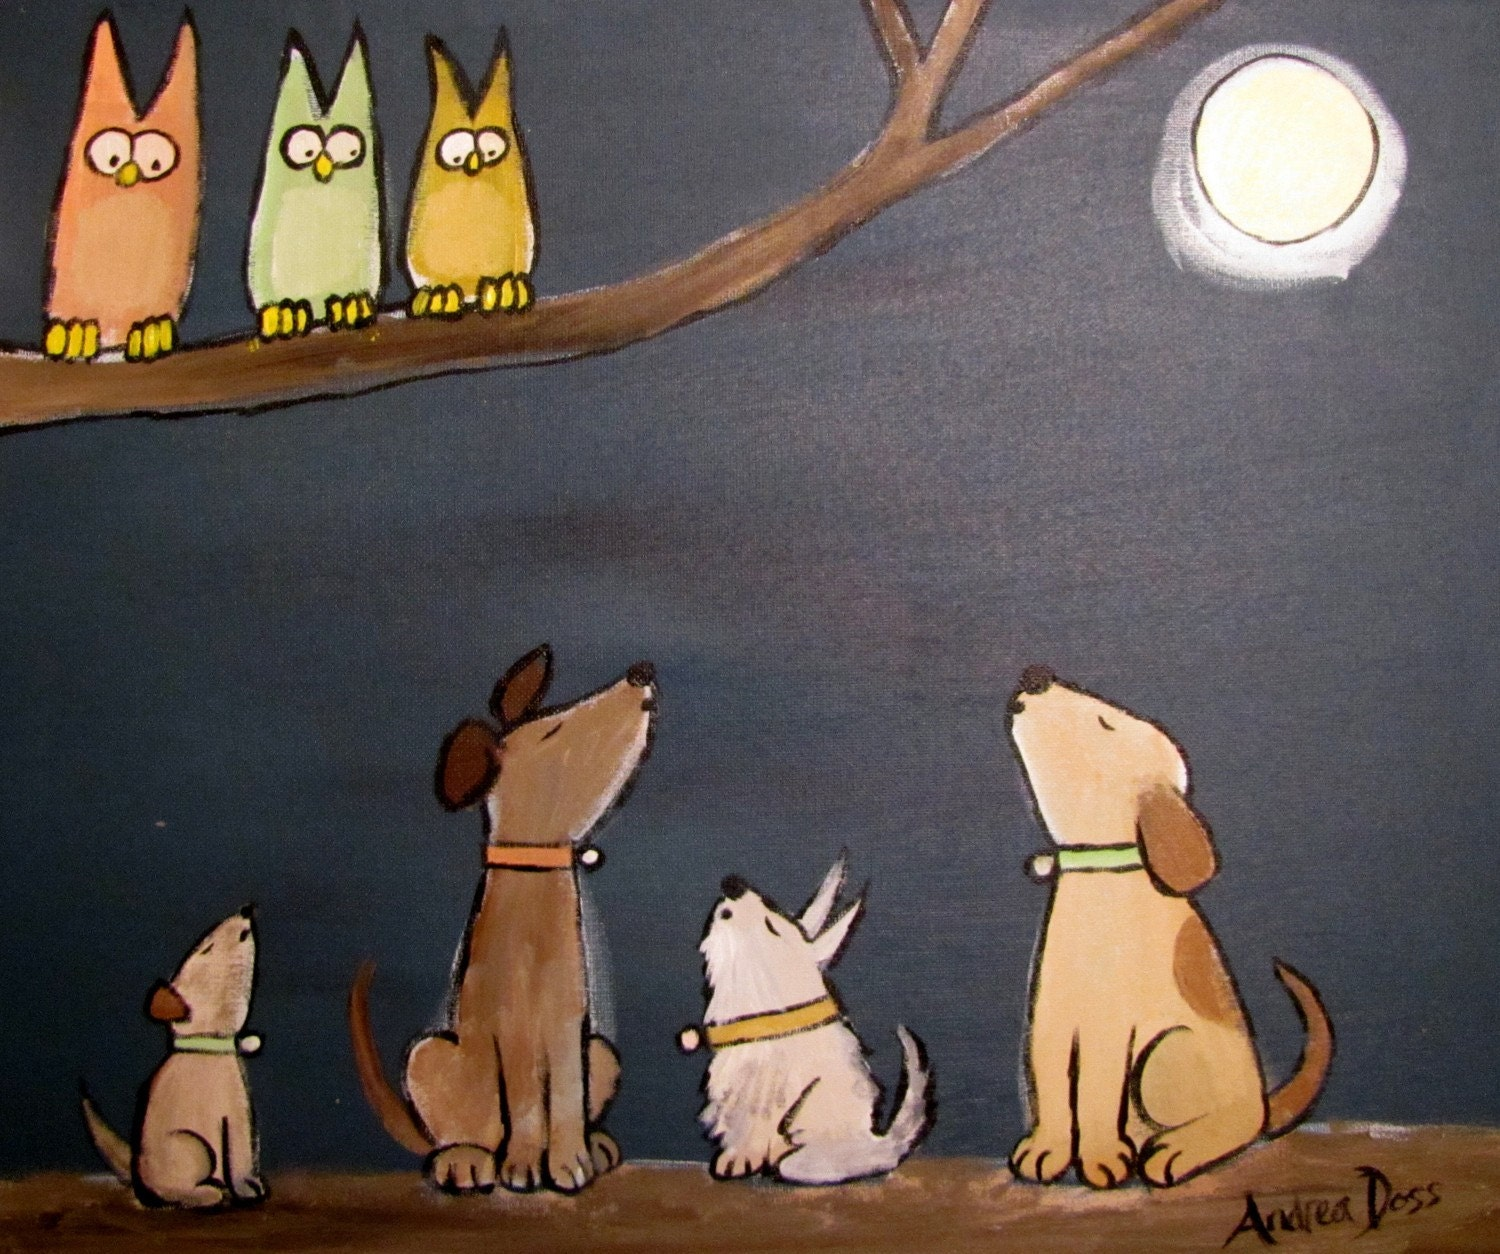 10 PERCENT OFF SALE Original 20 x 16 Howling at the Moon by Andrea Doss